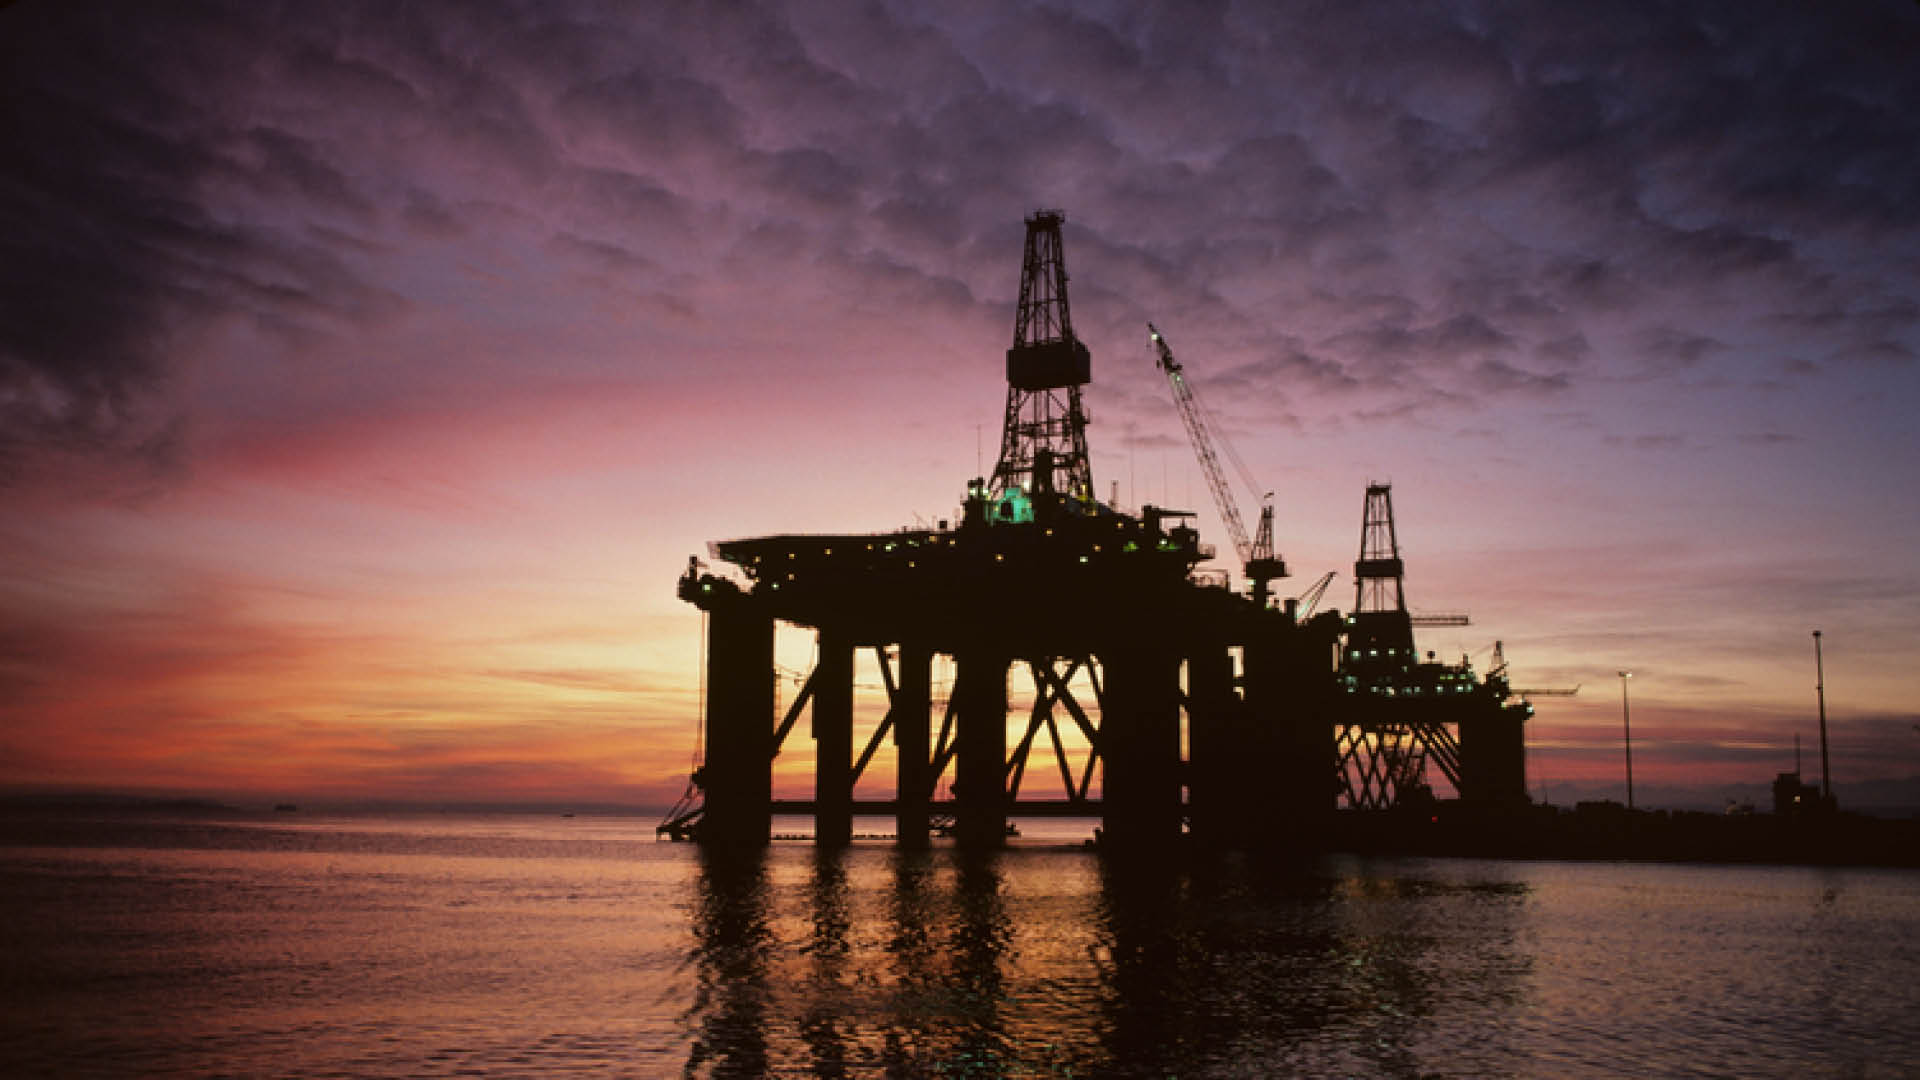 oil and gas in the sea